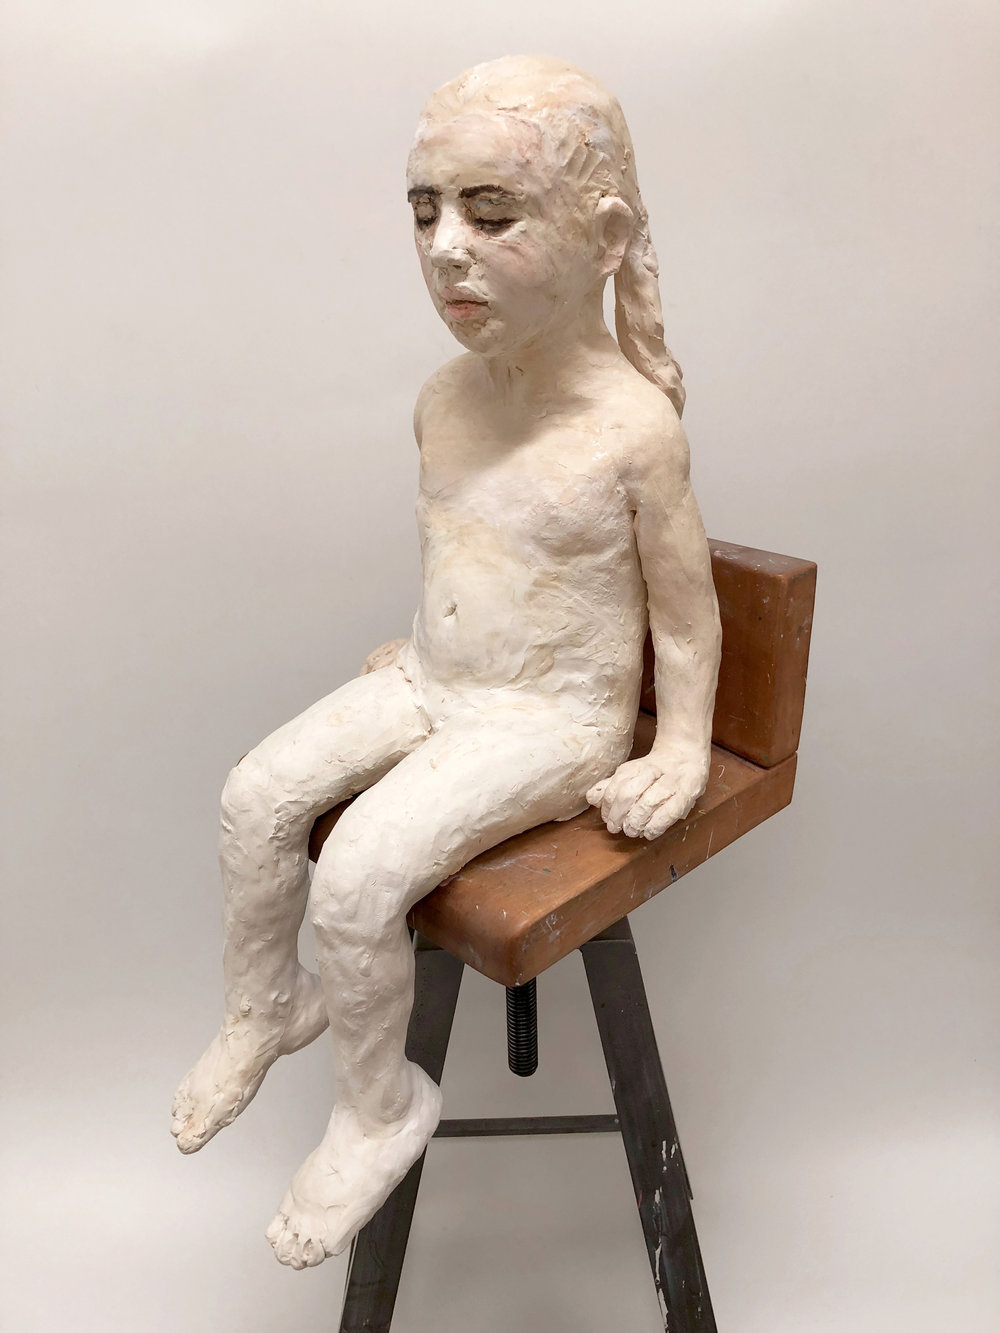 Untitled, (Girl on Stool), 2018, Ceramic, 29 1/2 x 15 x 15 in.